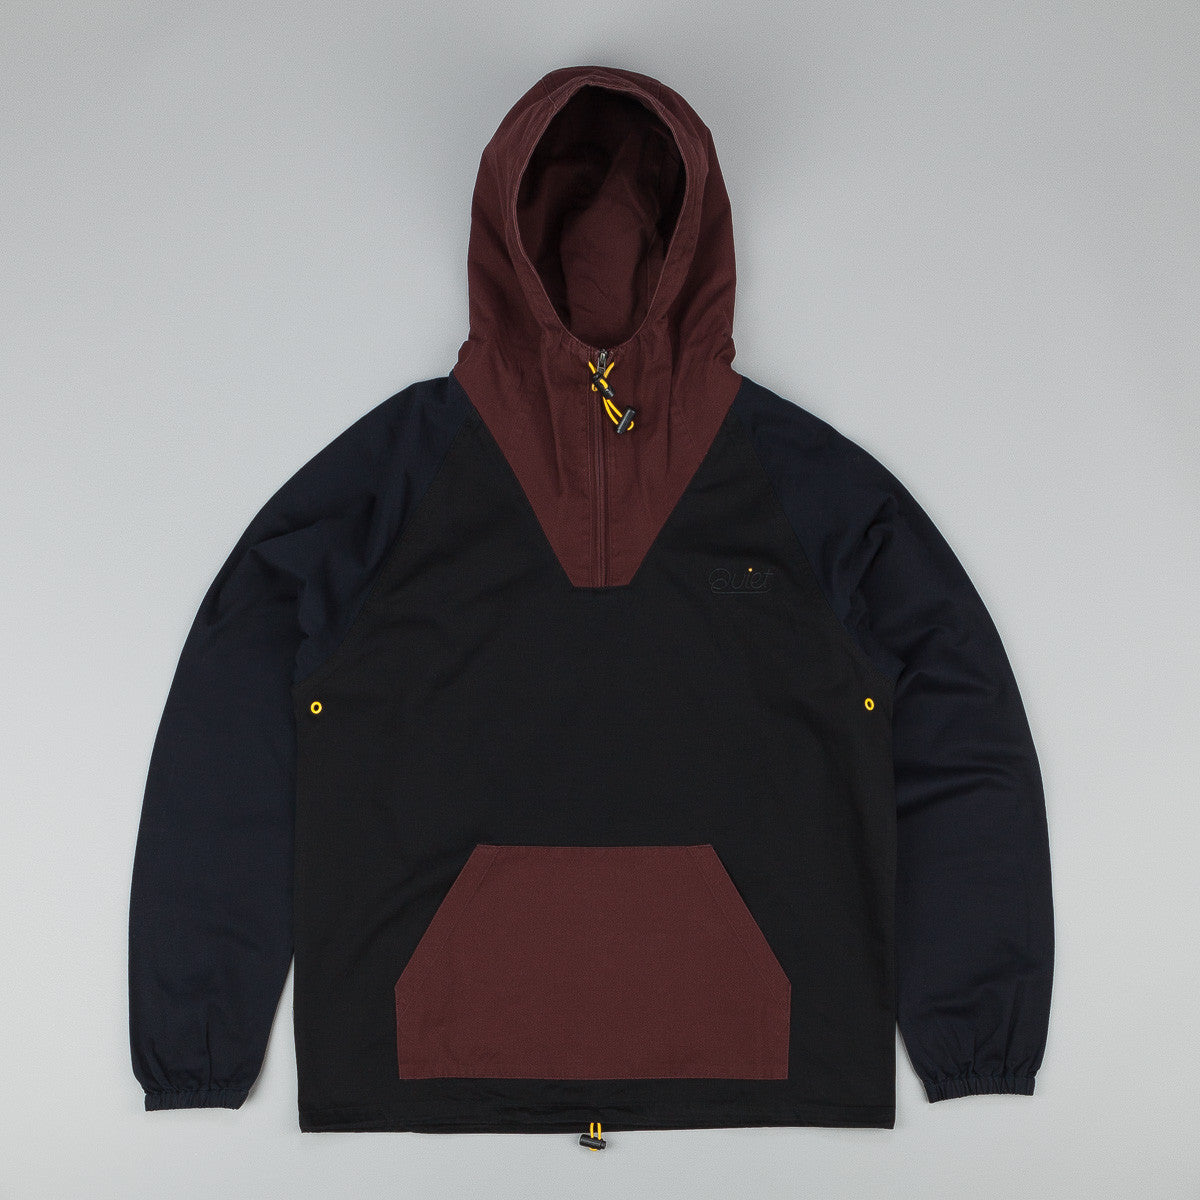 The Quiet Life Contrast Windy Pullover Jacket